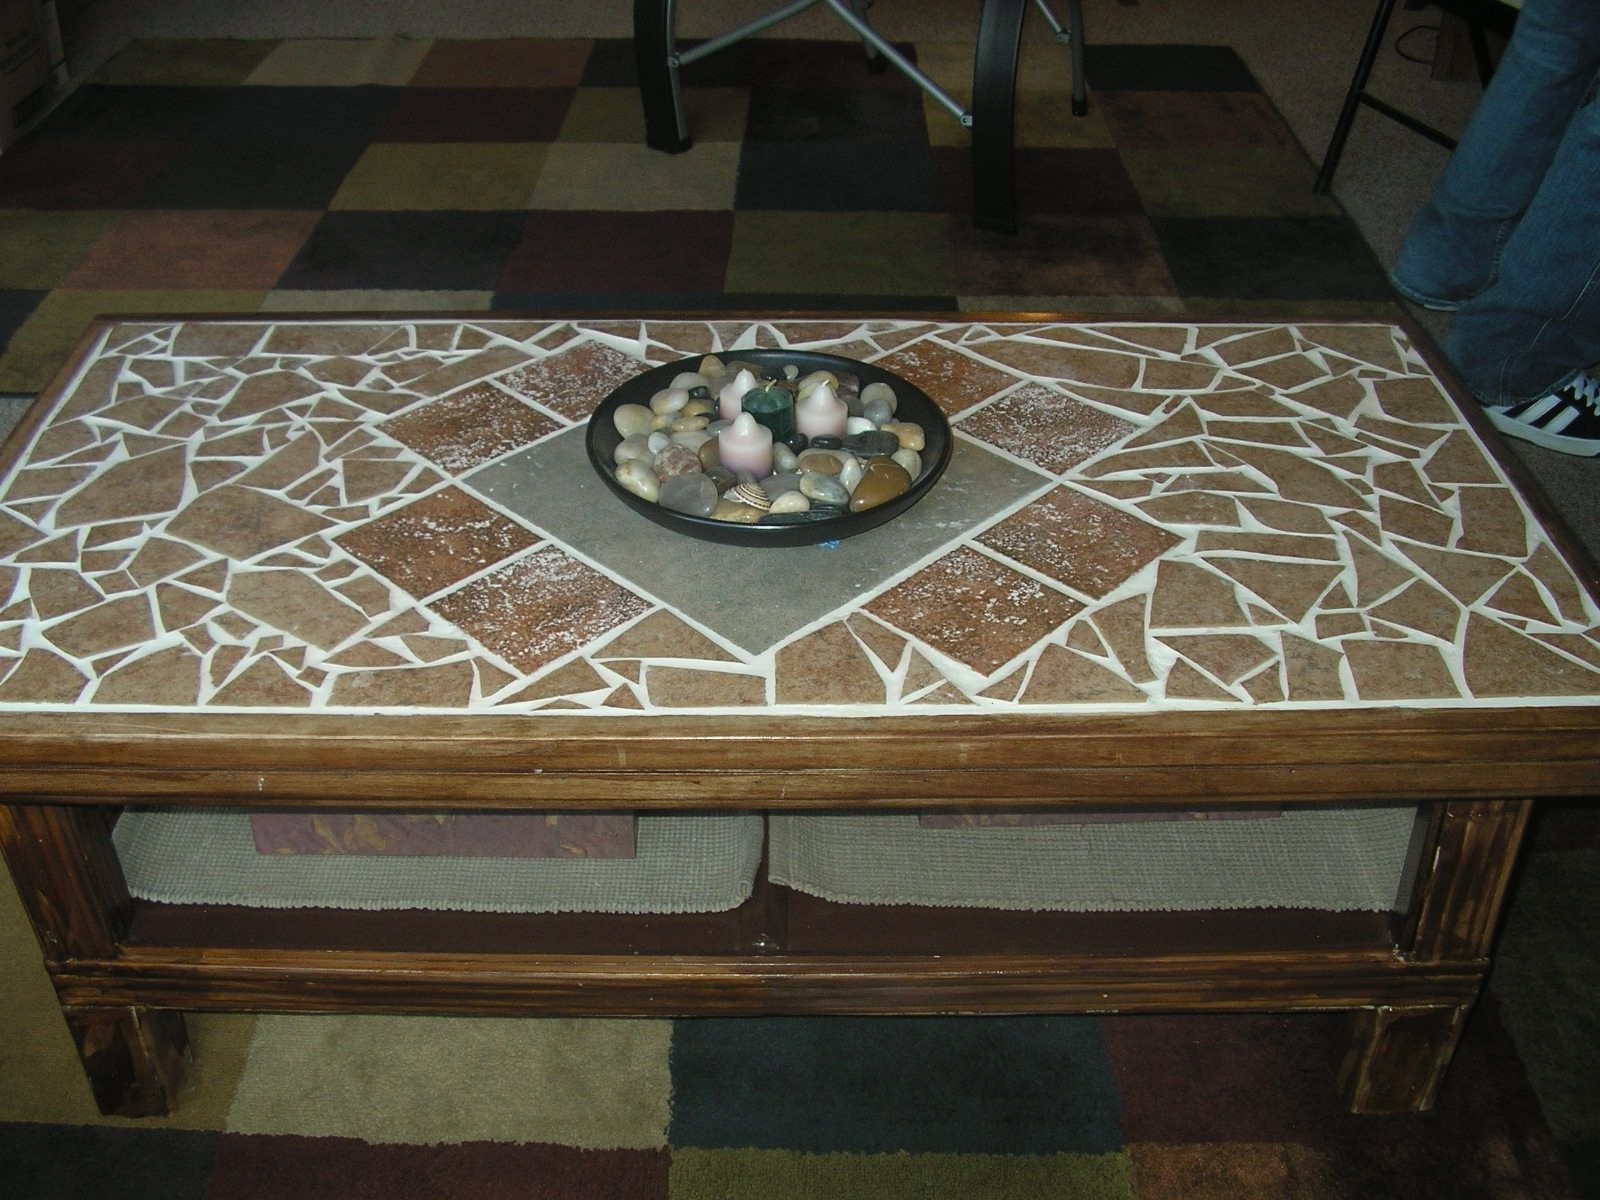 Well Known Mosaic Dining Tables For Sale Regarding For My $3 Garage Sale Find :) Redoing My Coffee Table Top With Tile (View 24 of 25)